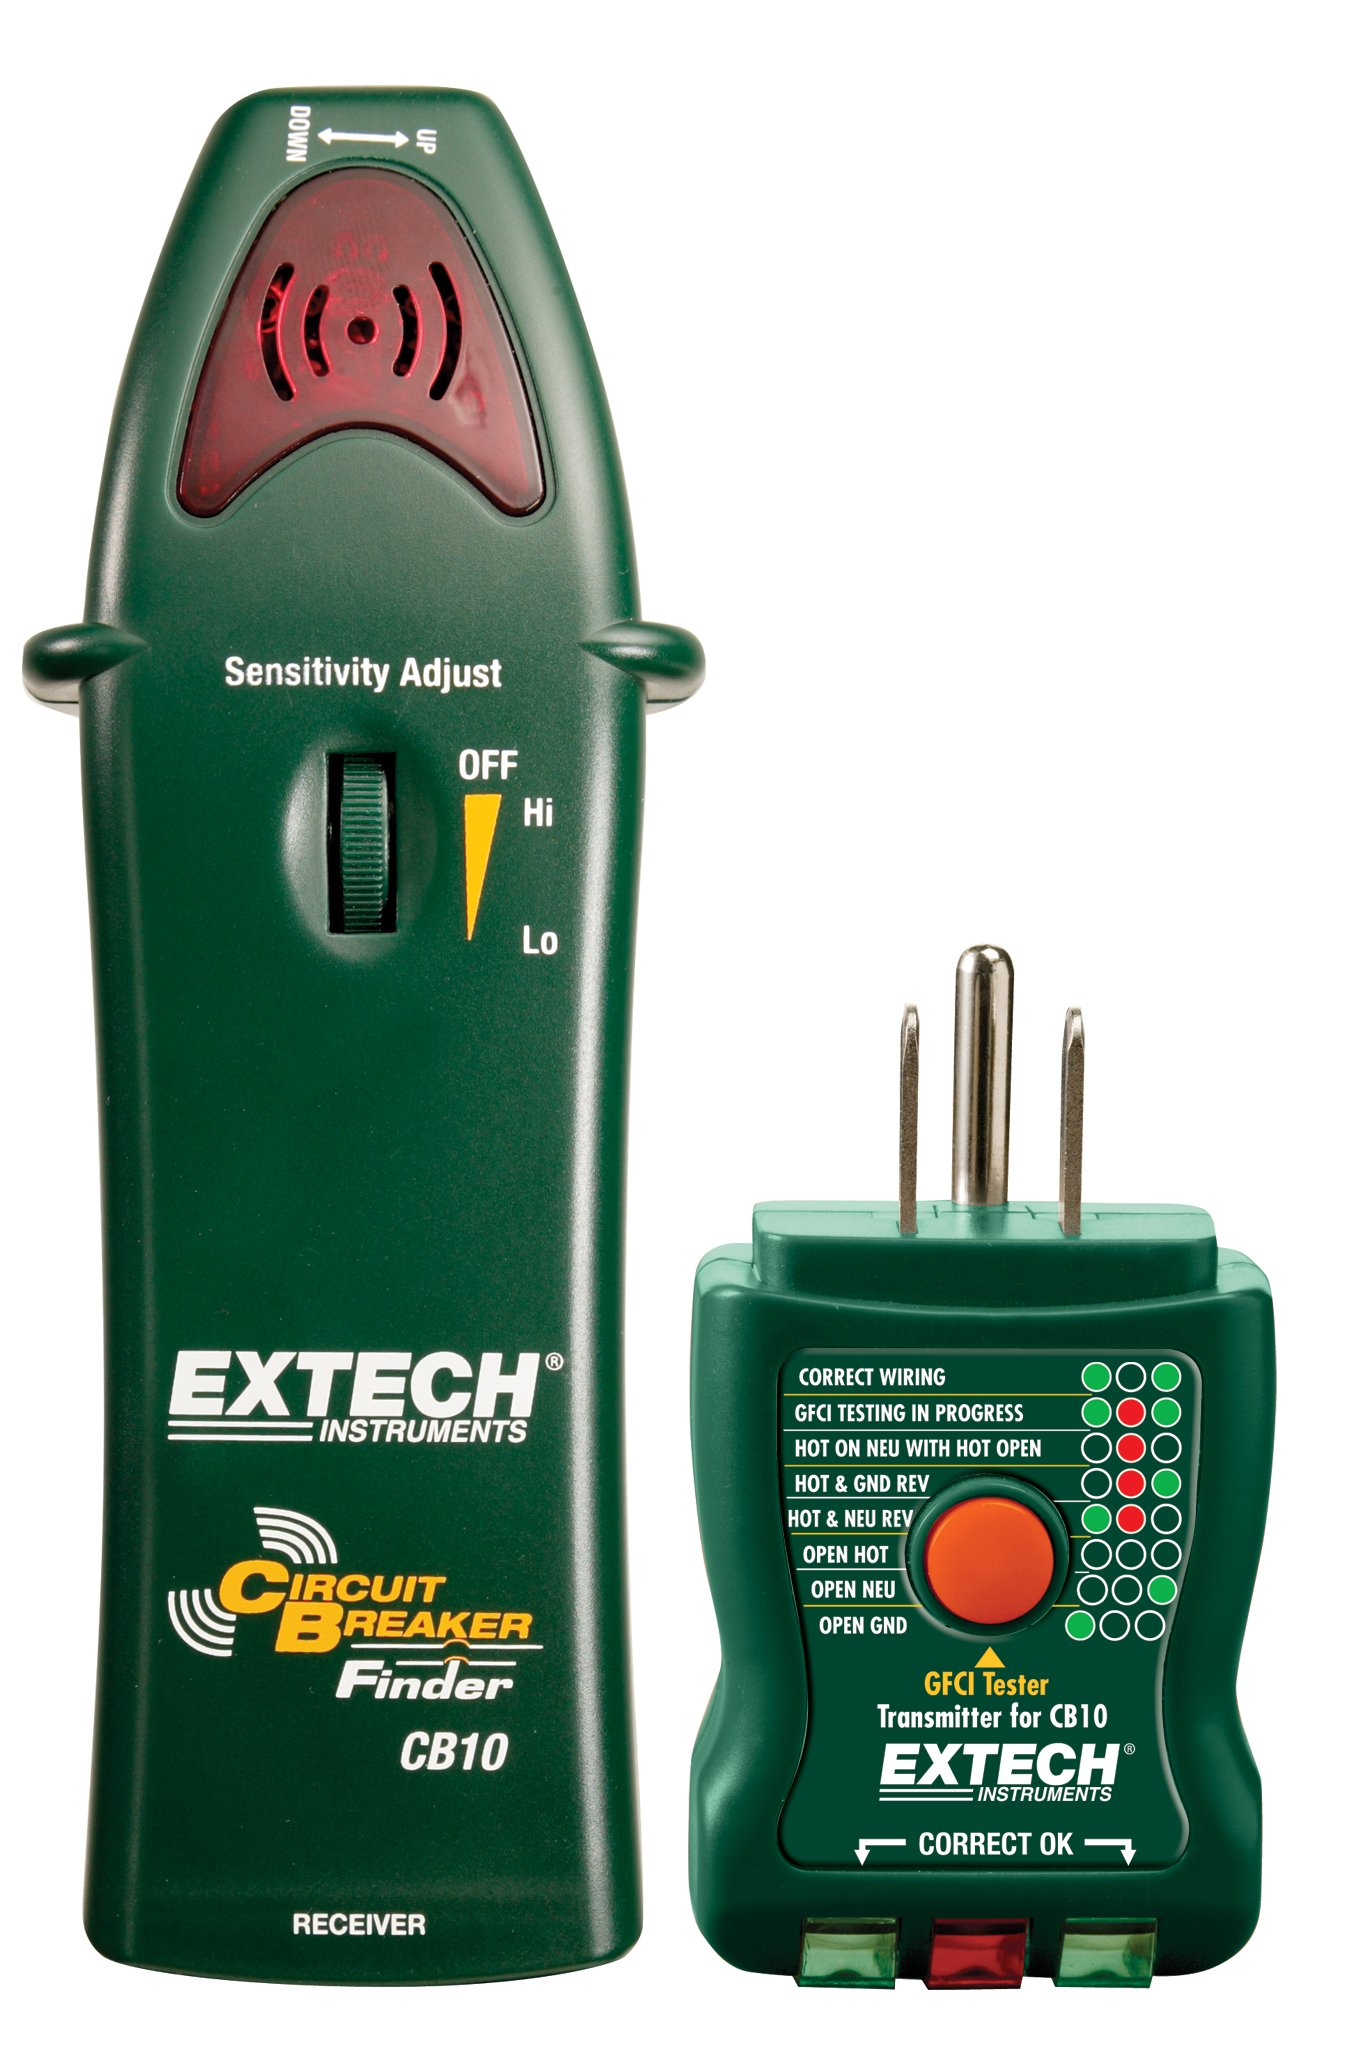 Extech CB10 Circuit Breaker Finder by Extech